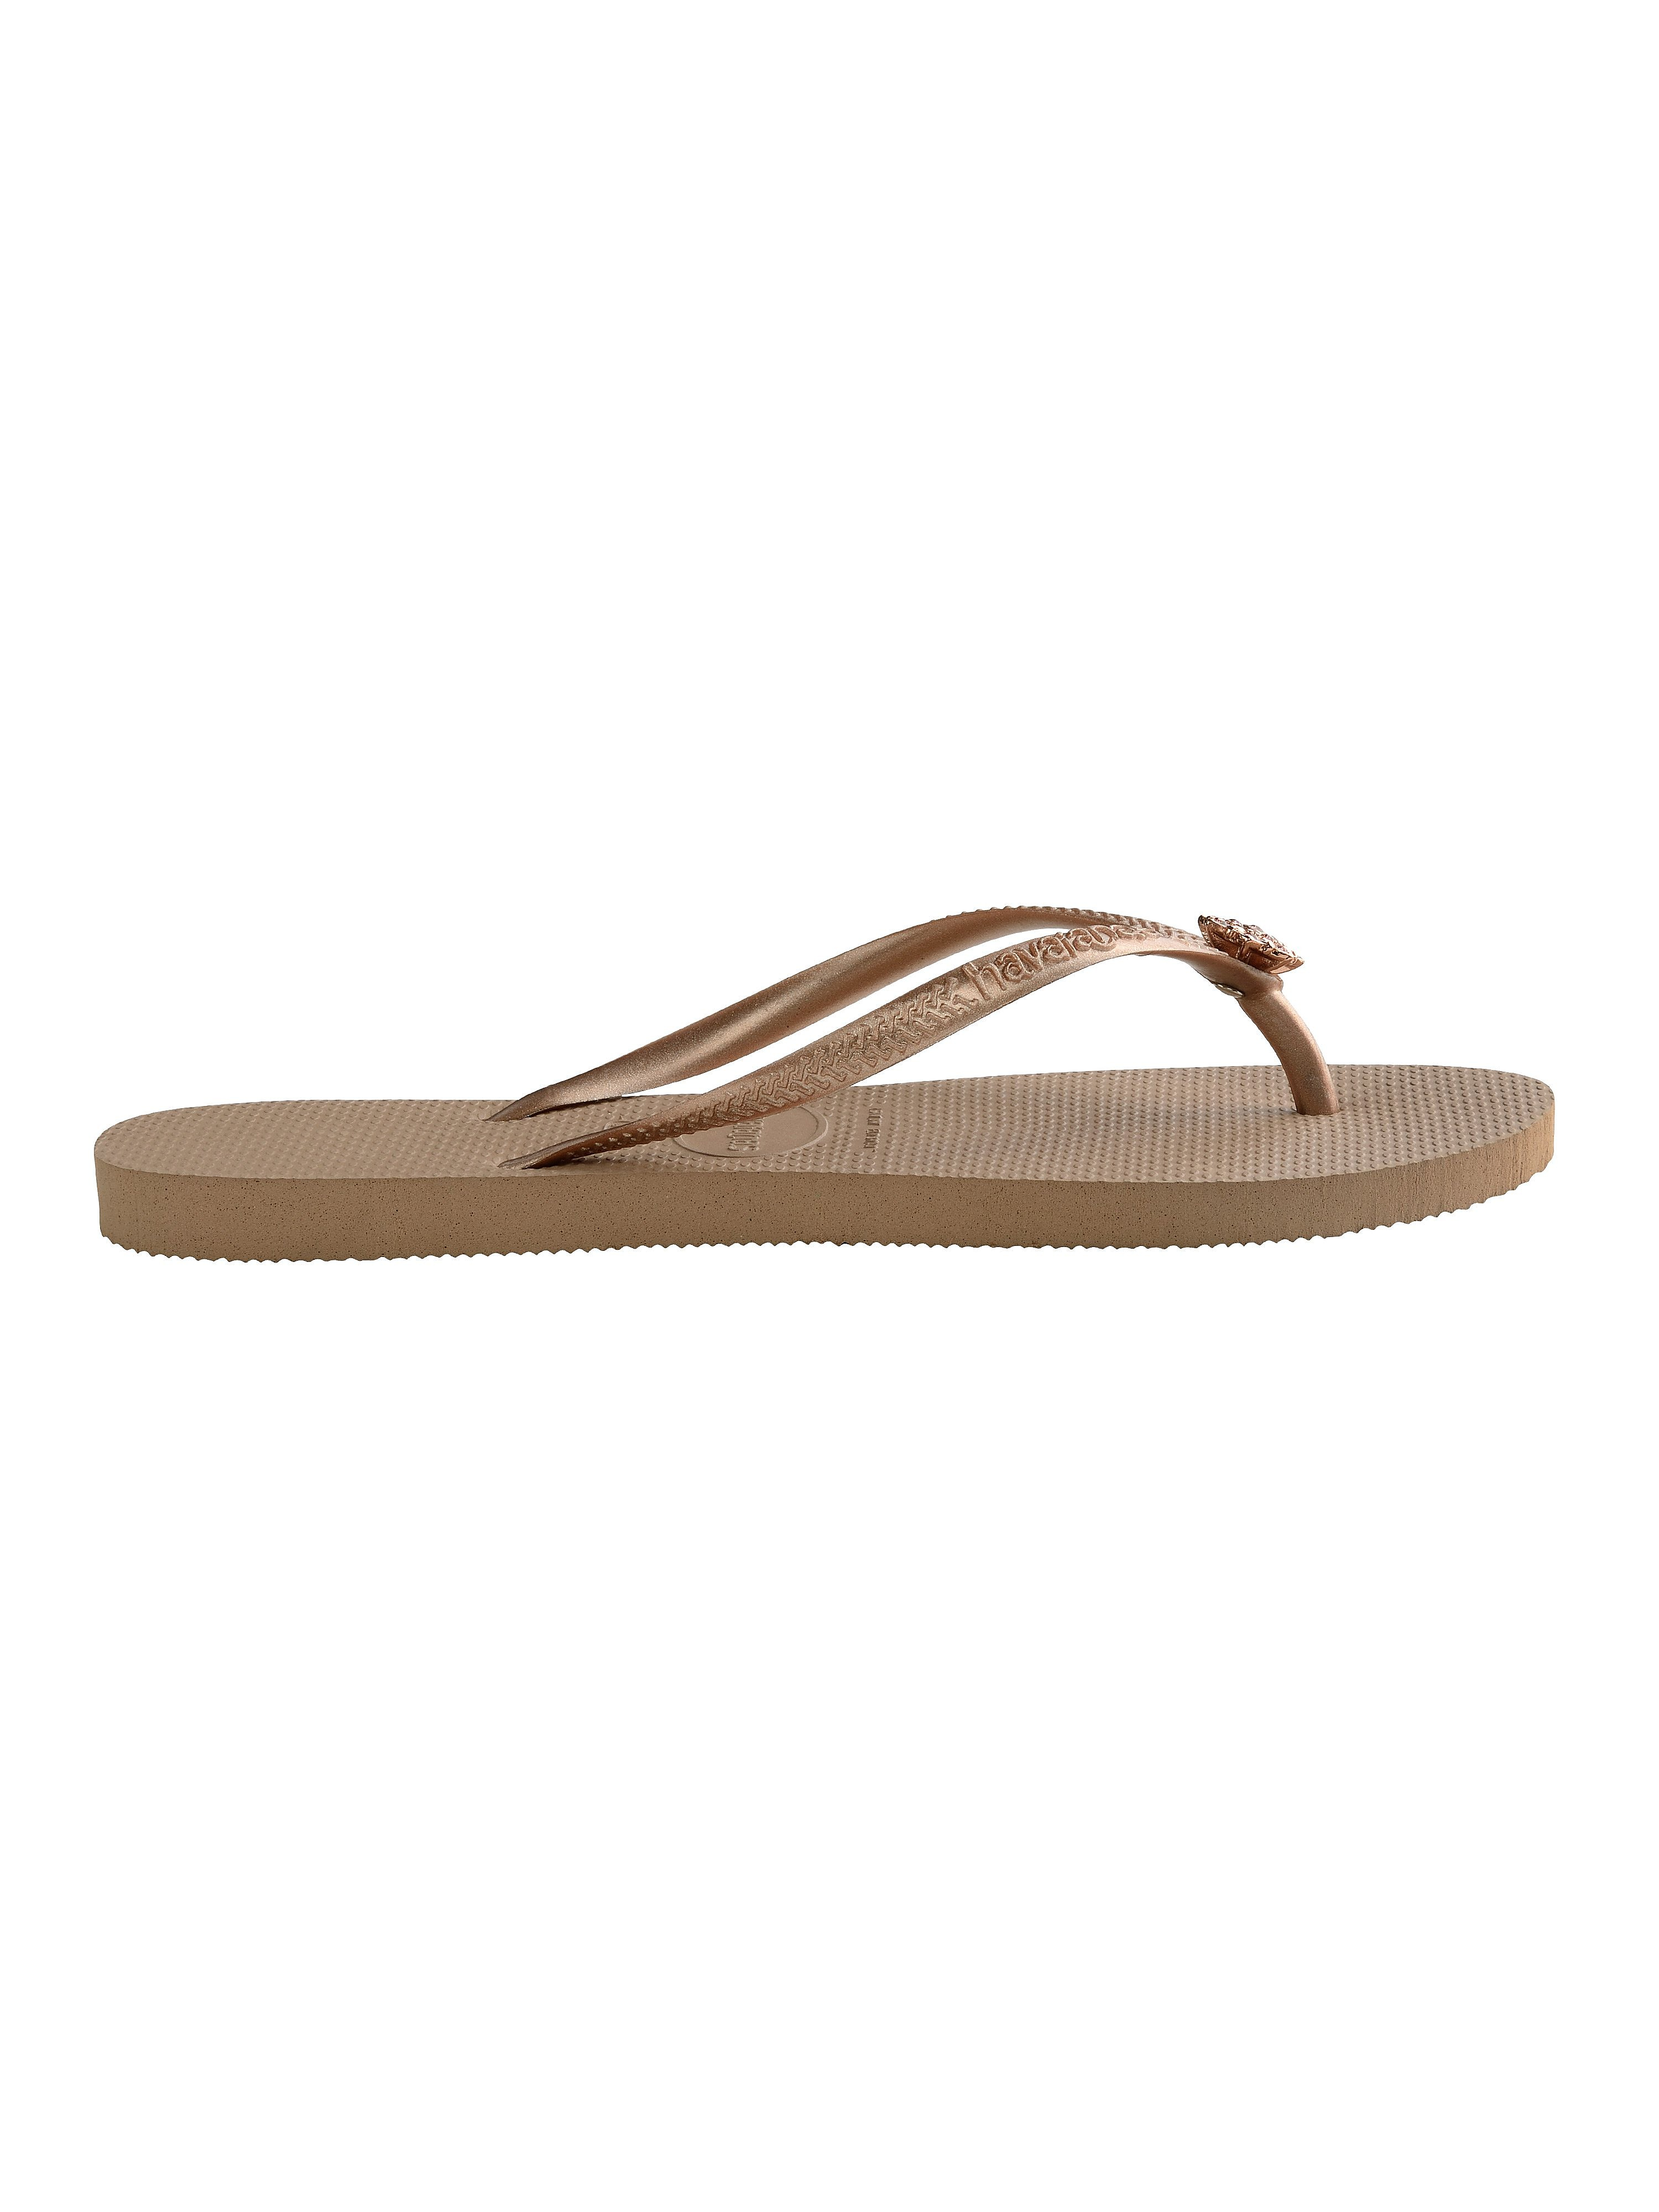 Havaianas Women's Slim Crystal Poem Flip Flops - Rose Gold